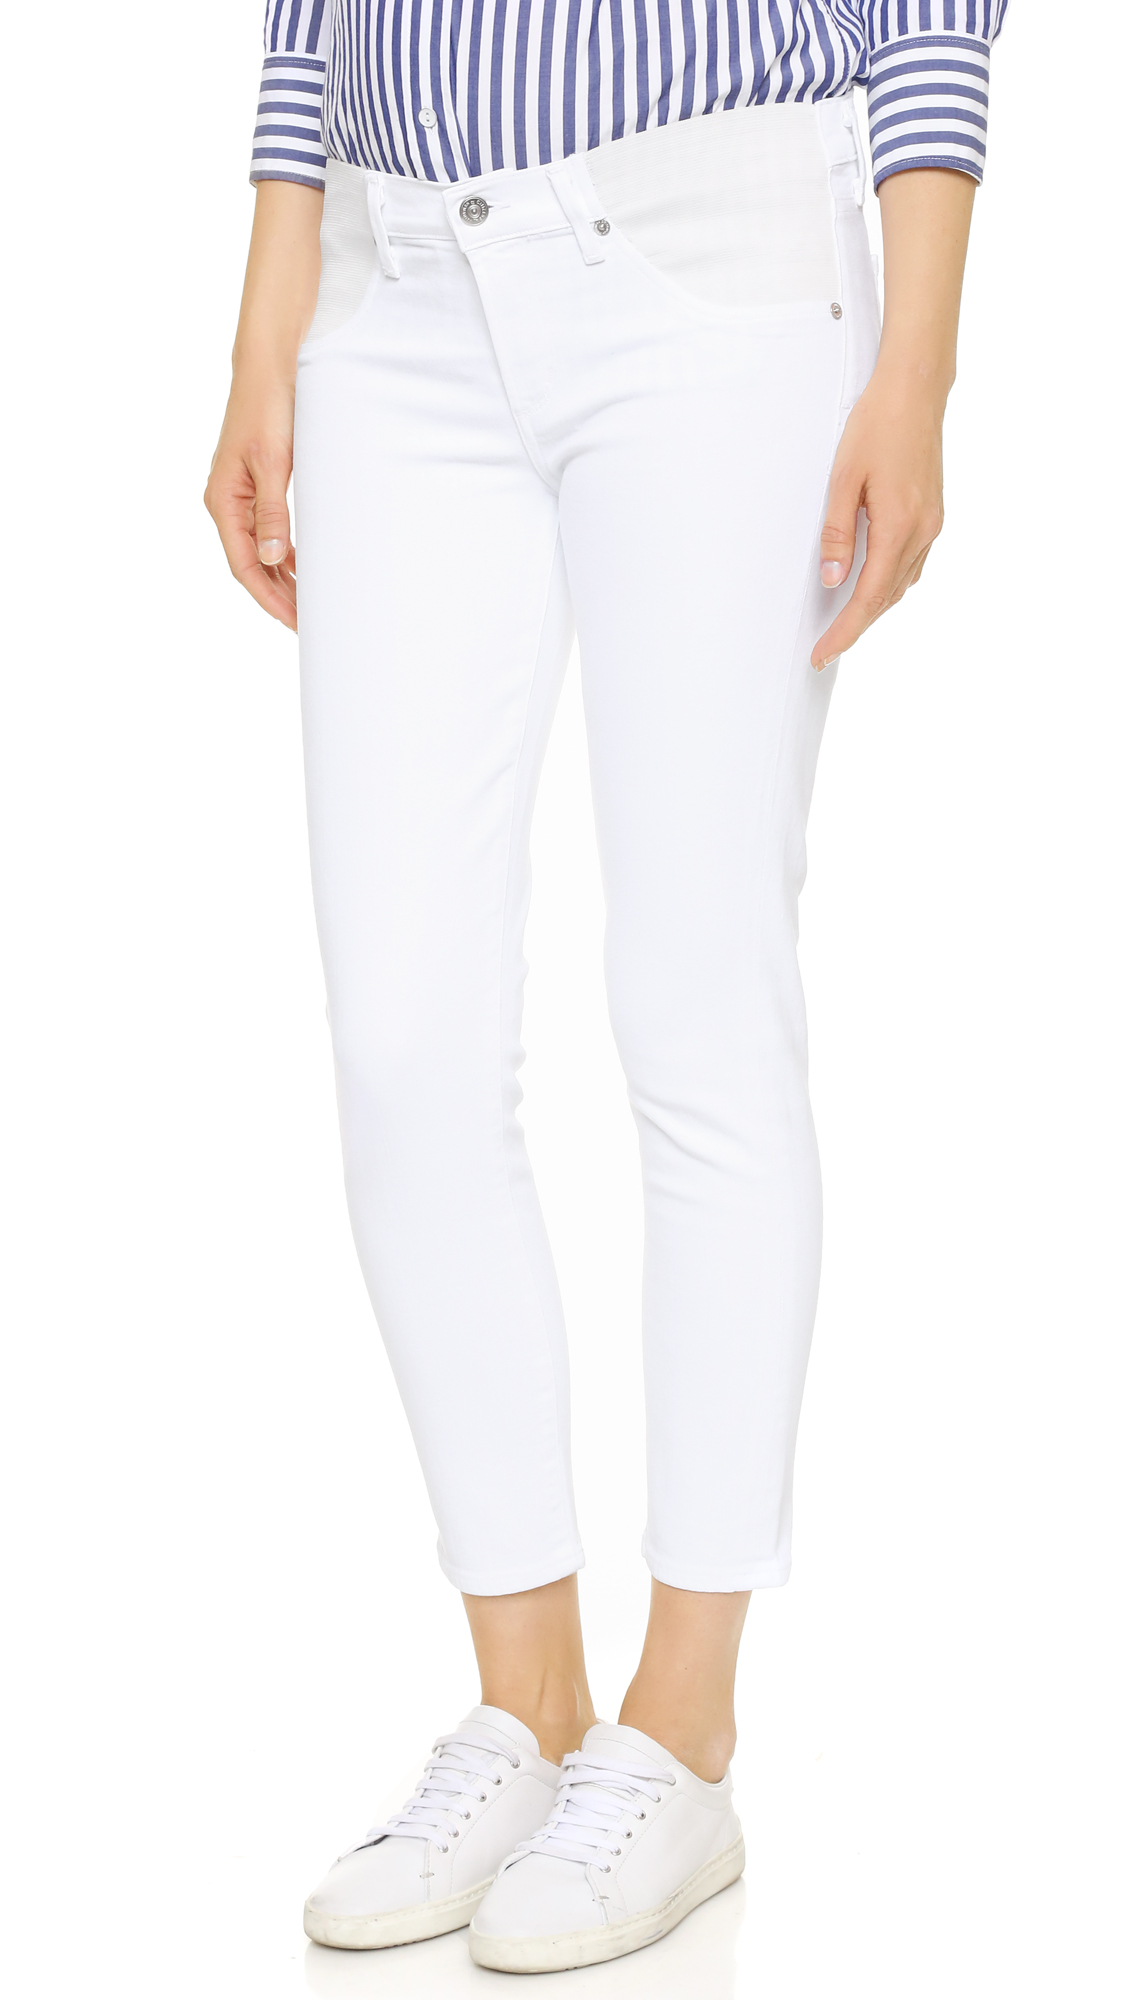 Citizens of Humanity Avedon Below the Belly Ultra Ankle Skinny Jeans